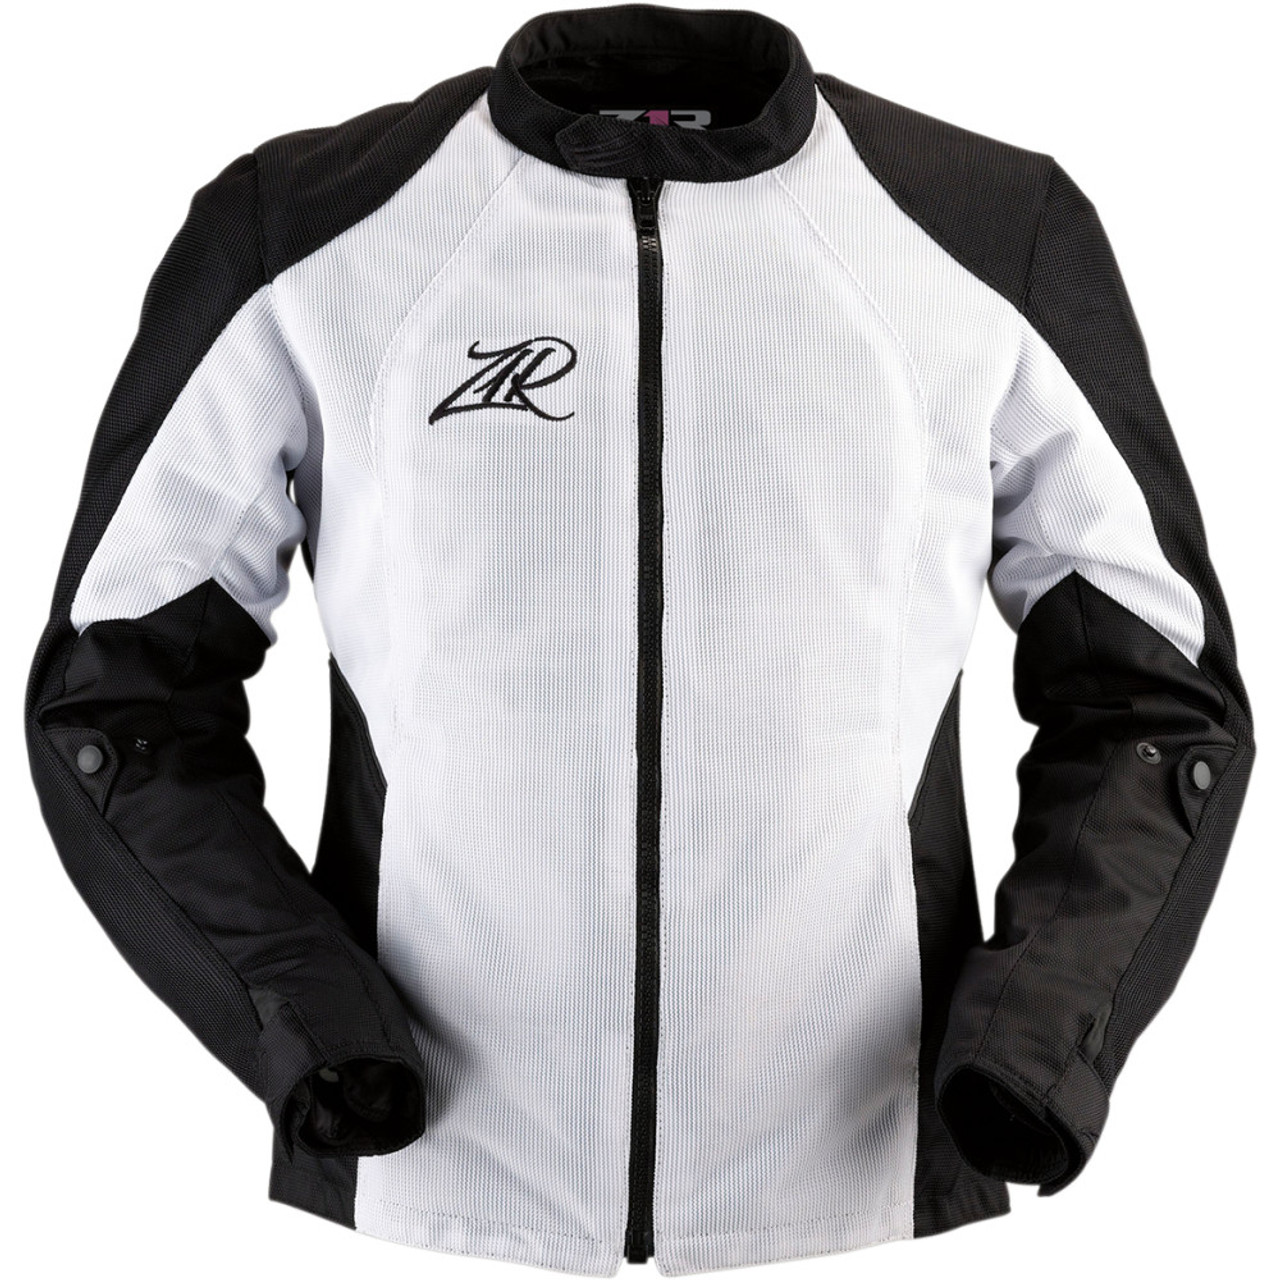 rock-bottom price performance sportswear san francisco Z1R Women's Gust Mesh Jacket - White